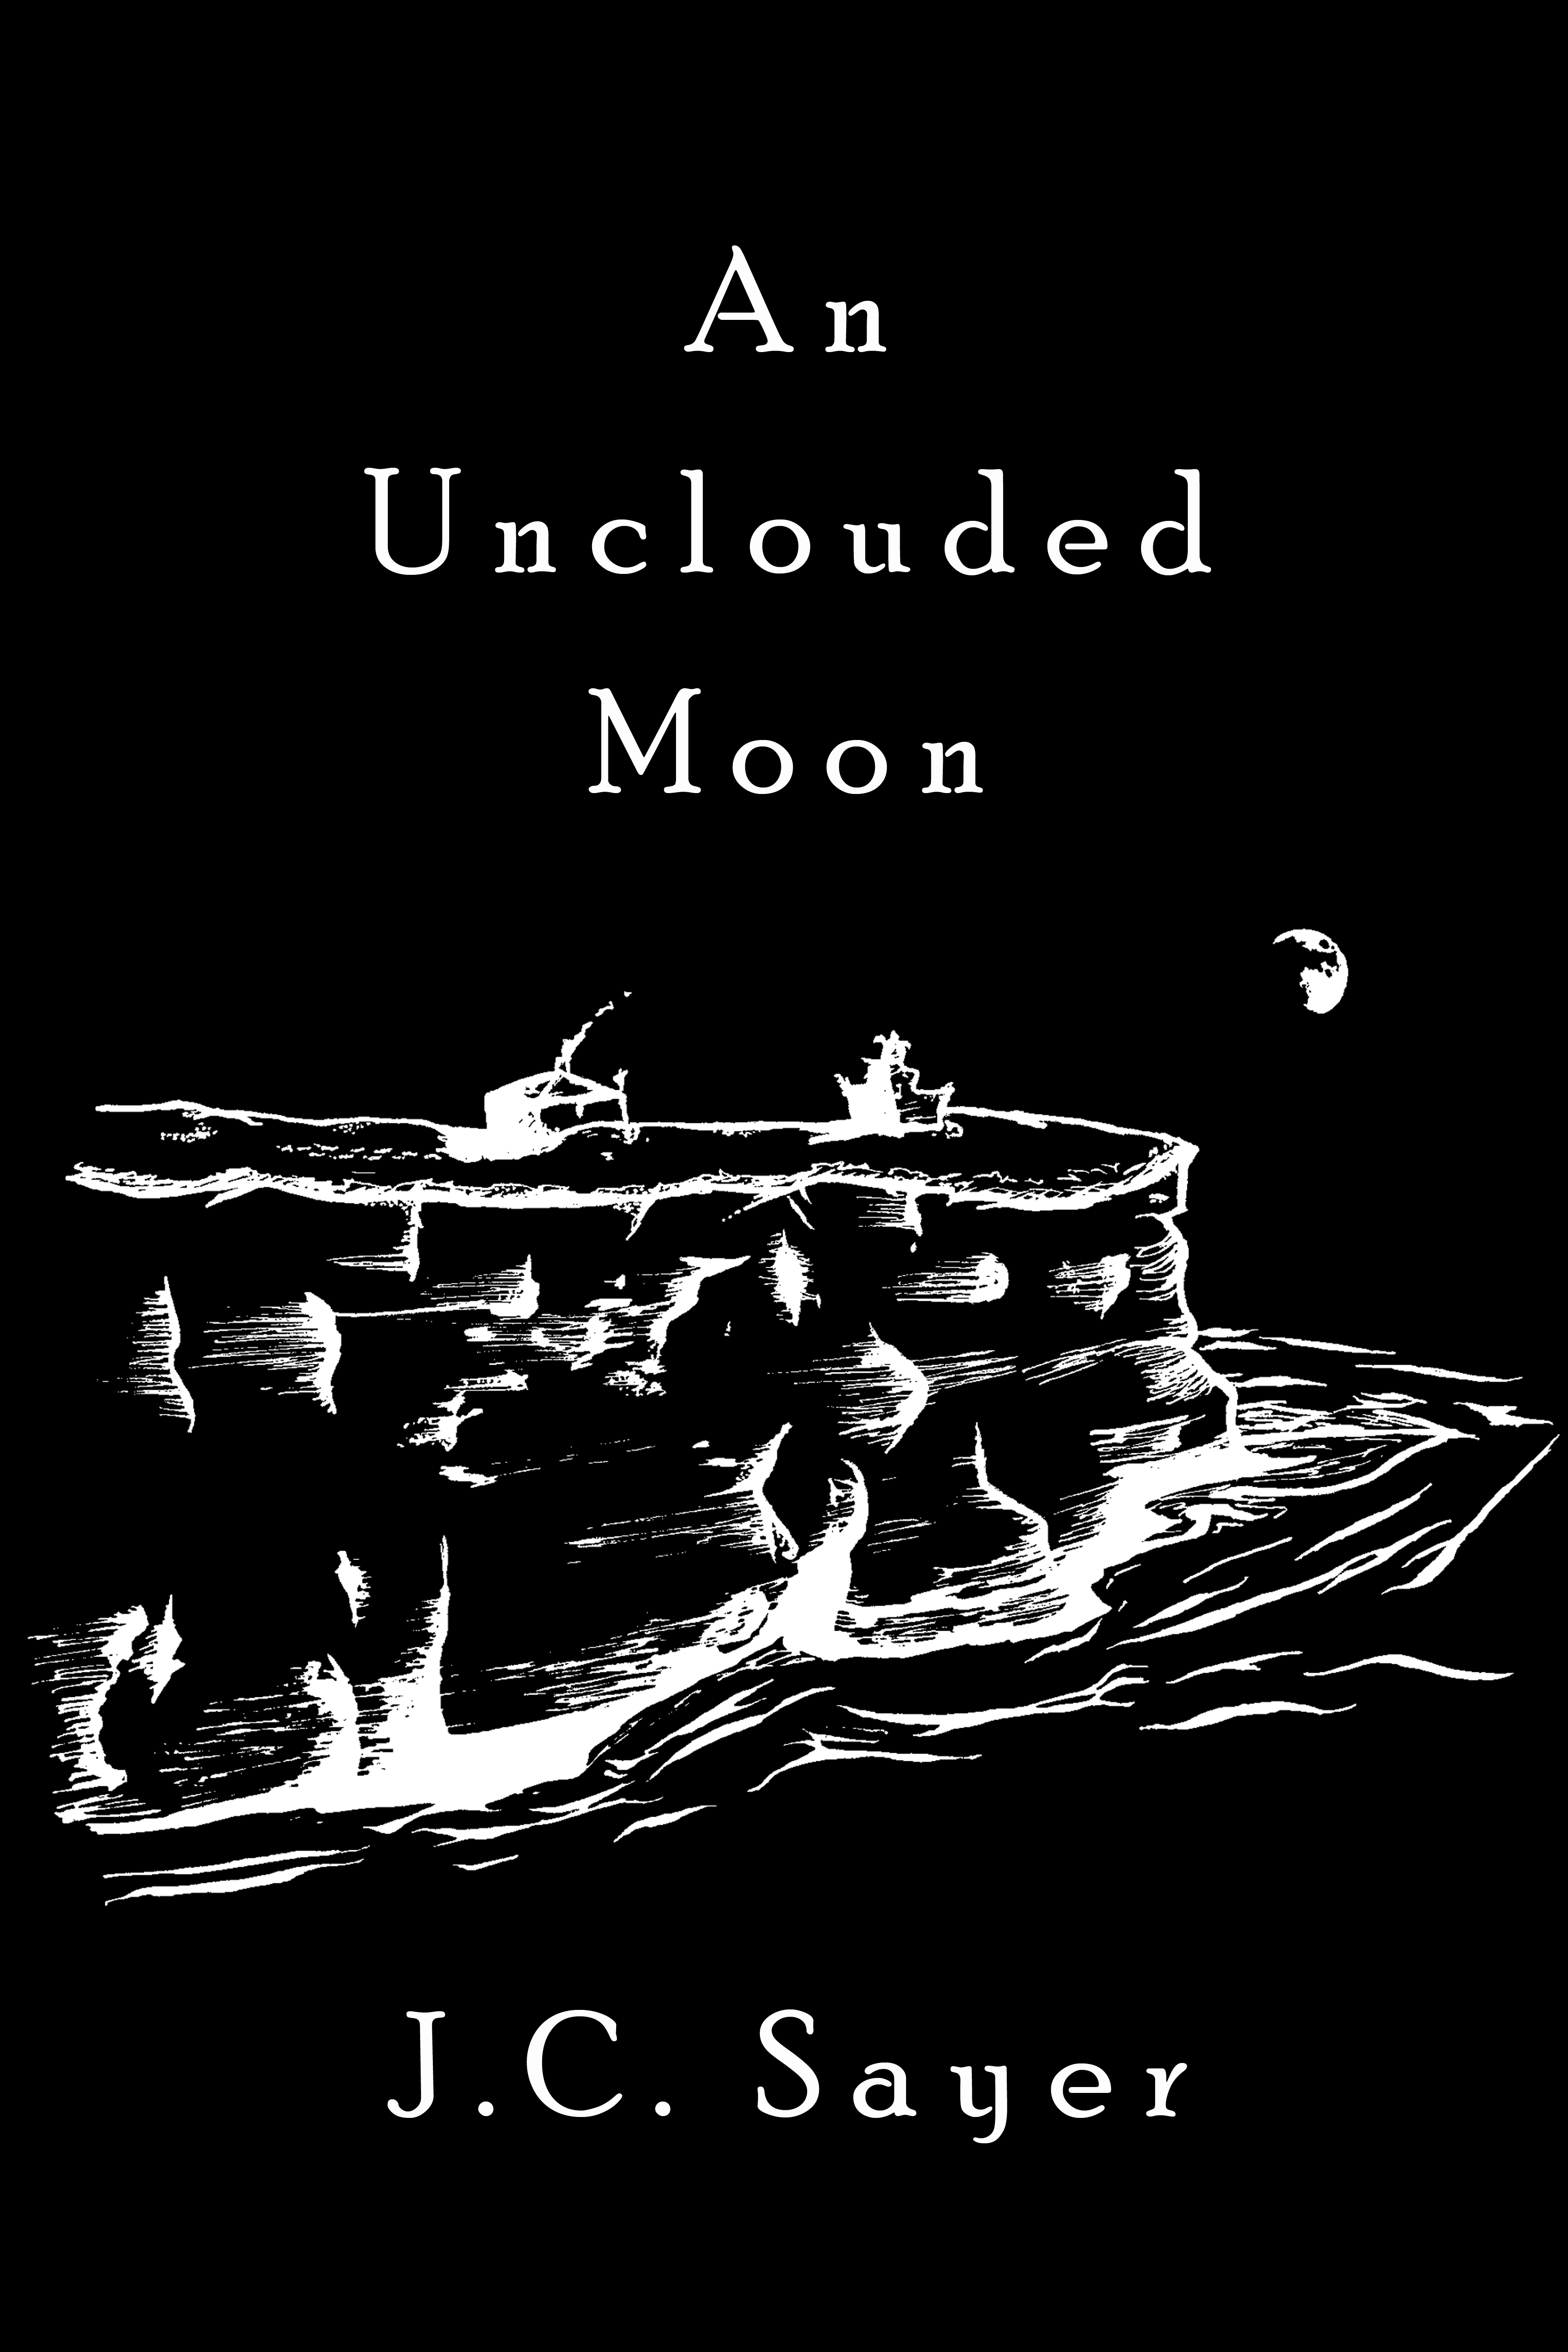 An Unclouded Moon